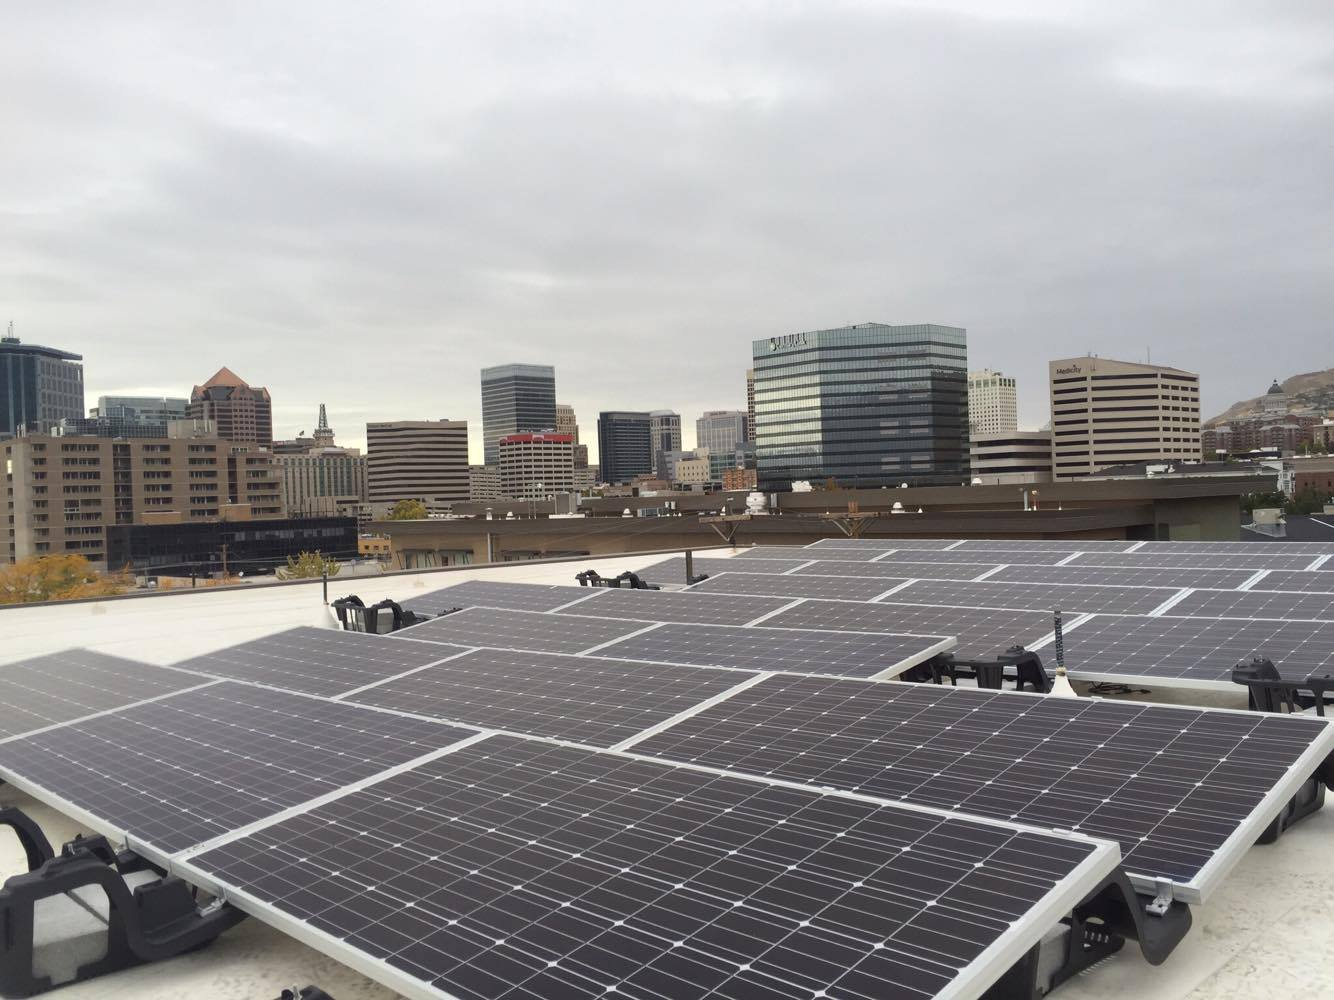 YWCA   160 panels installed 54kW generated per month  $312.59 saved per month